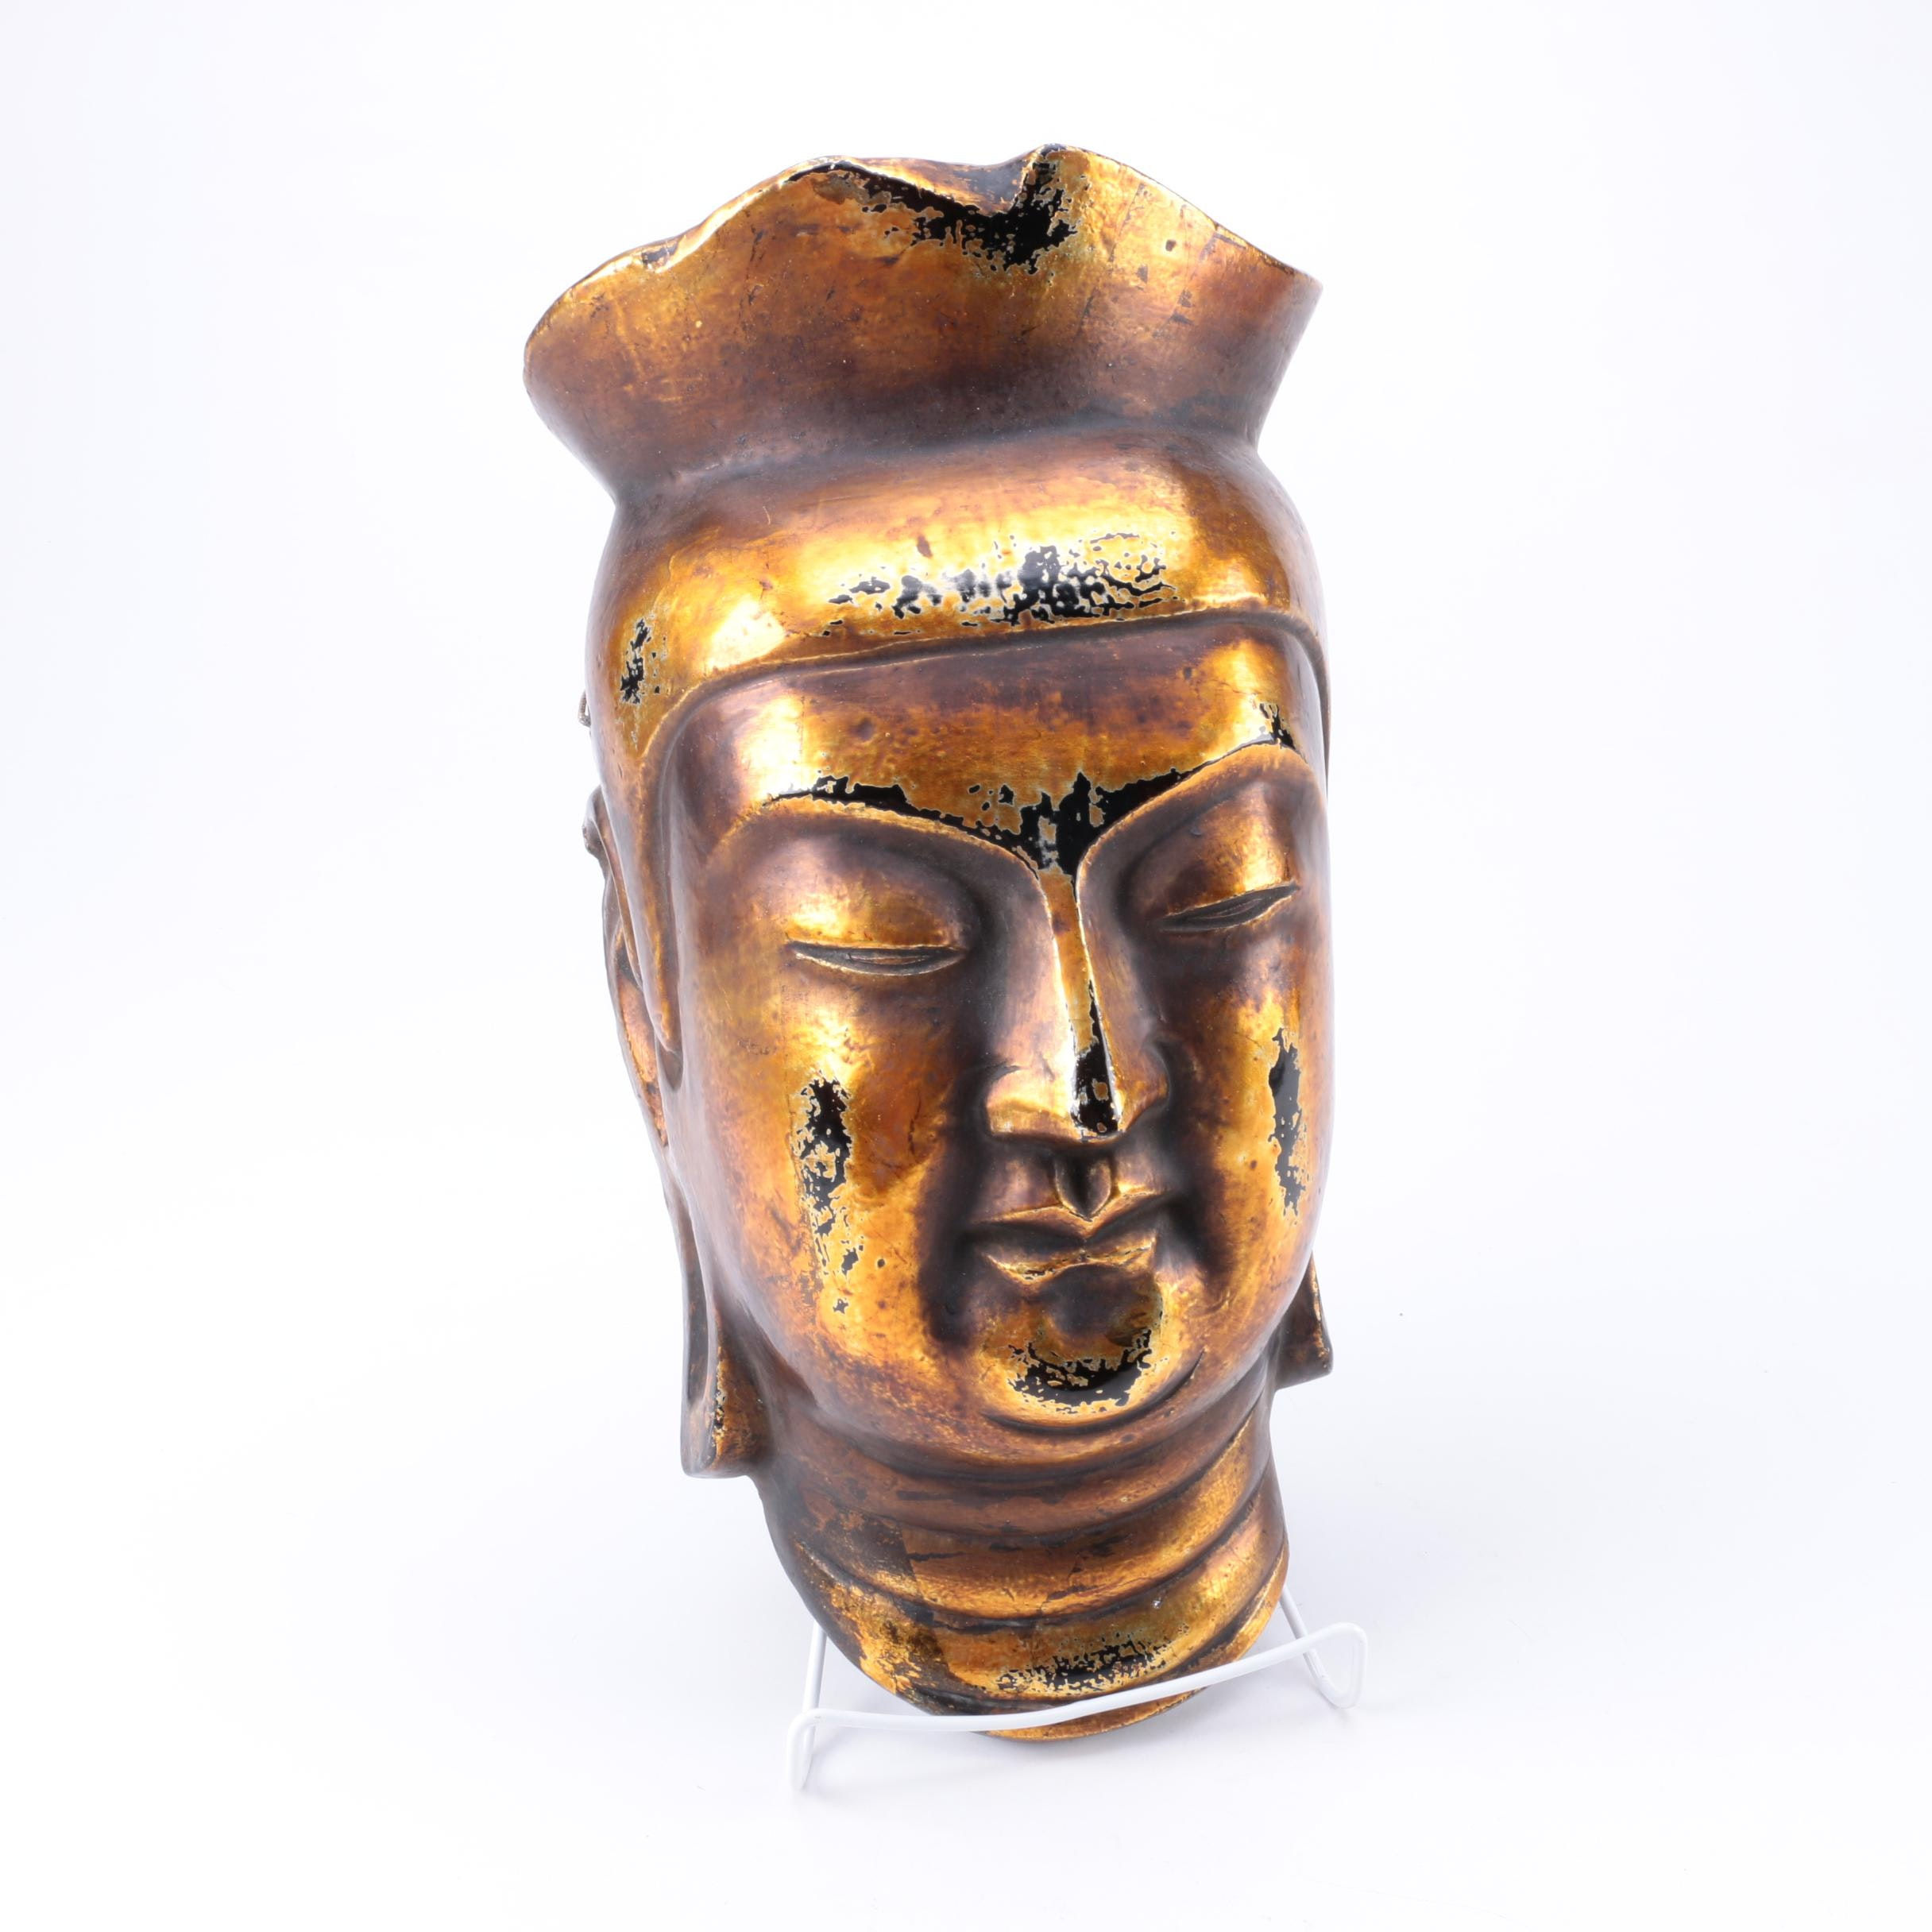 East Asian Style Resin Mask